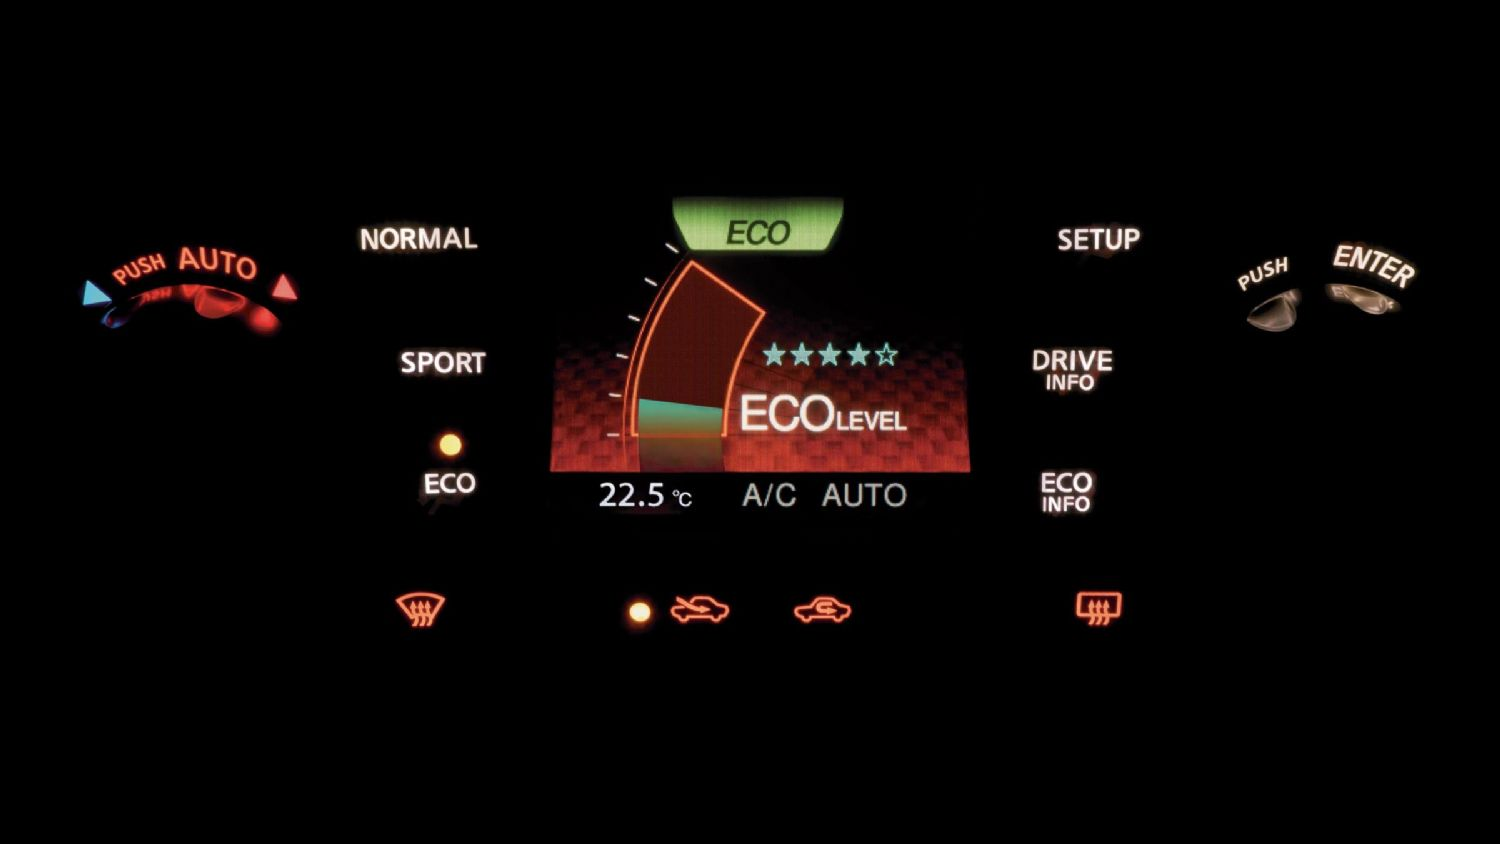 Nissan Dynamic Control System with 'eco mode'